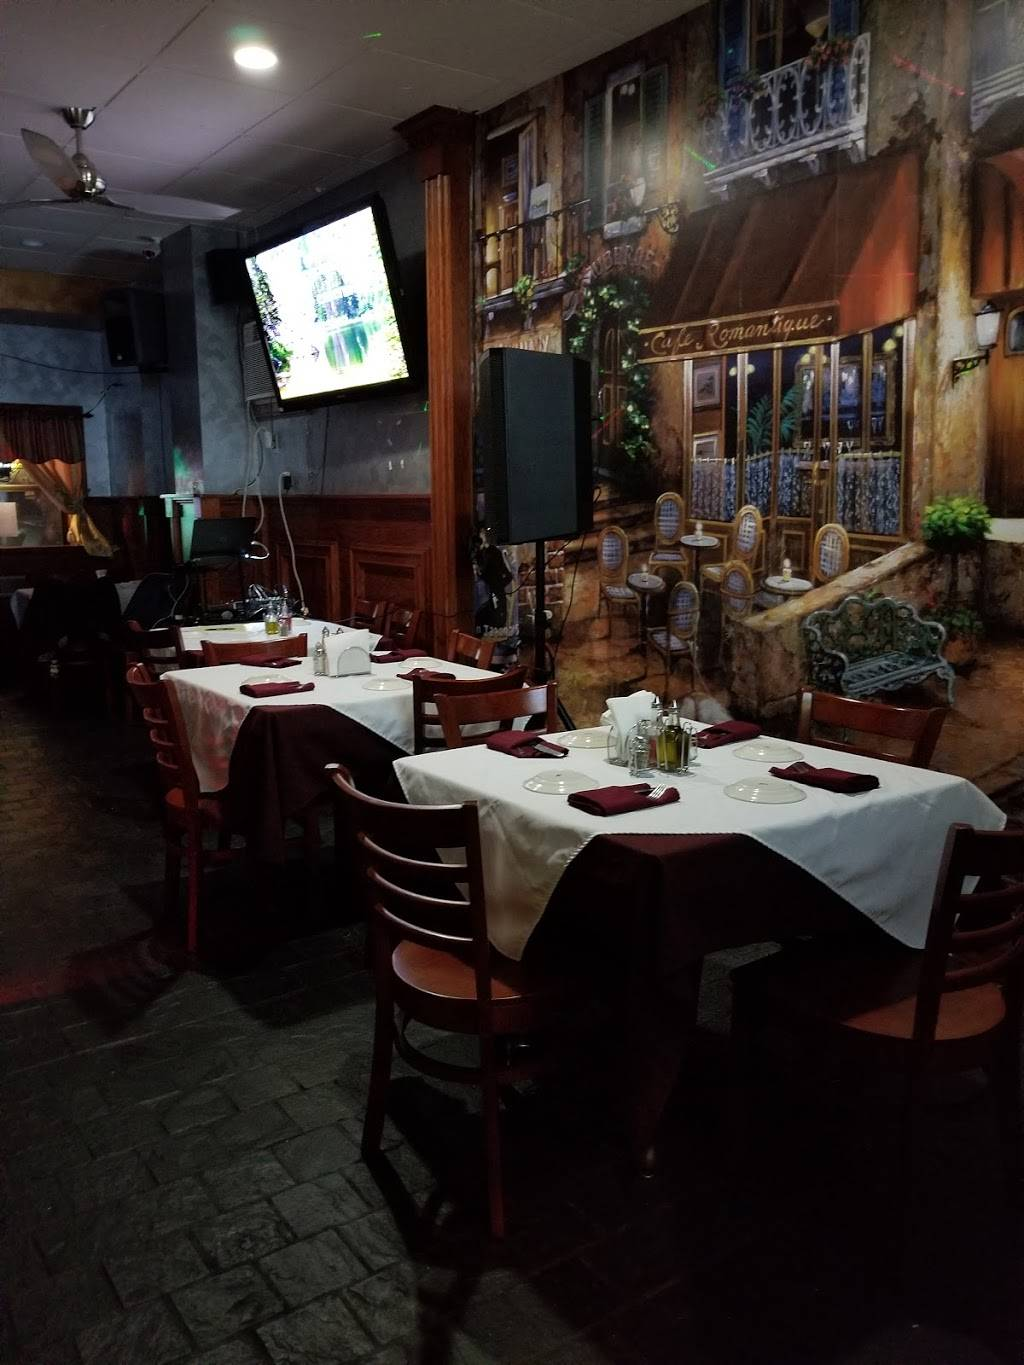 Marisqueira Portugal Steak & Seafood Restaurant | restaurant | Yonkers, NY 10703, USA | 9143750833 OR +1 914-375-0833